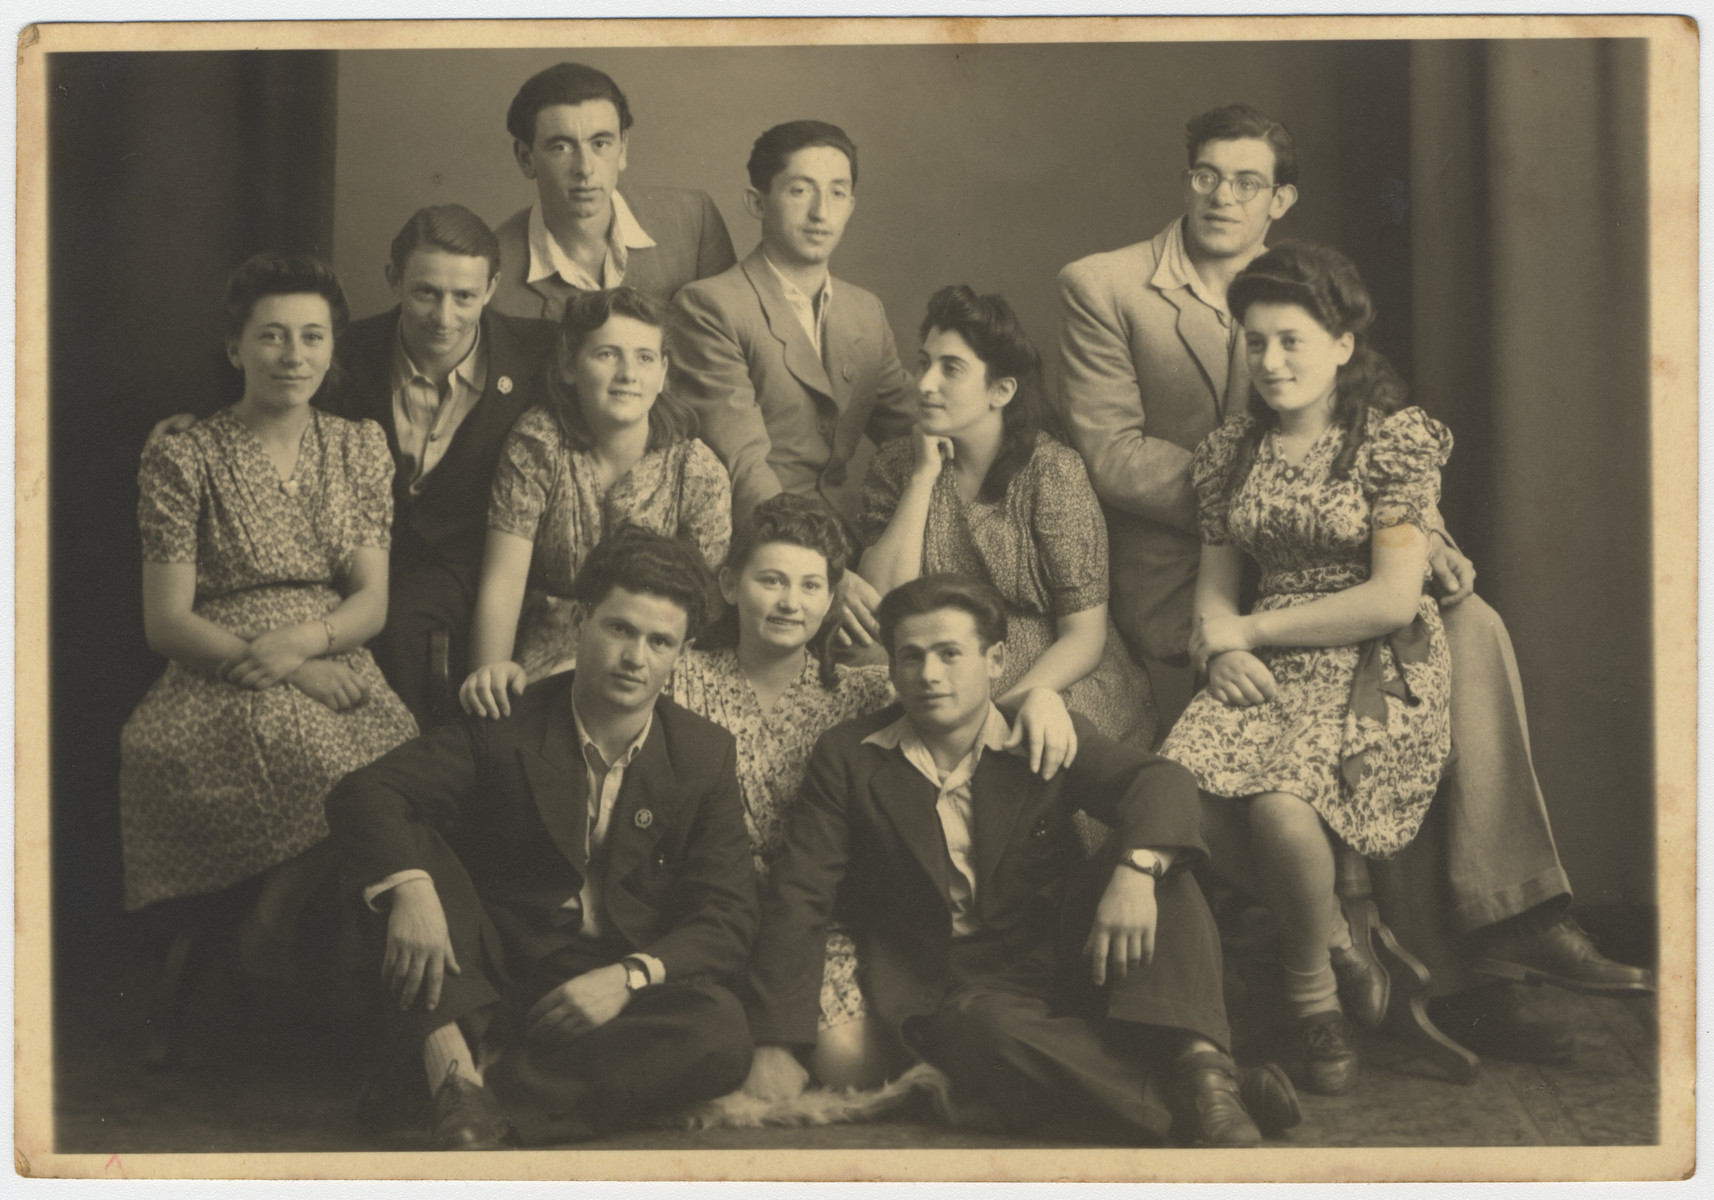 Group portrait of members of the Zionist youth movement Hashomer Hatzair in the Bergen-Belsen displaced persons' camp.  Max Schanzer is pictured in the back row, center.  Also pictured are Moshe Shapiro and Yehuda Marin.